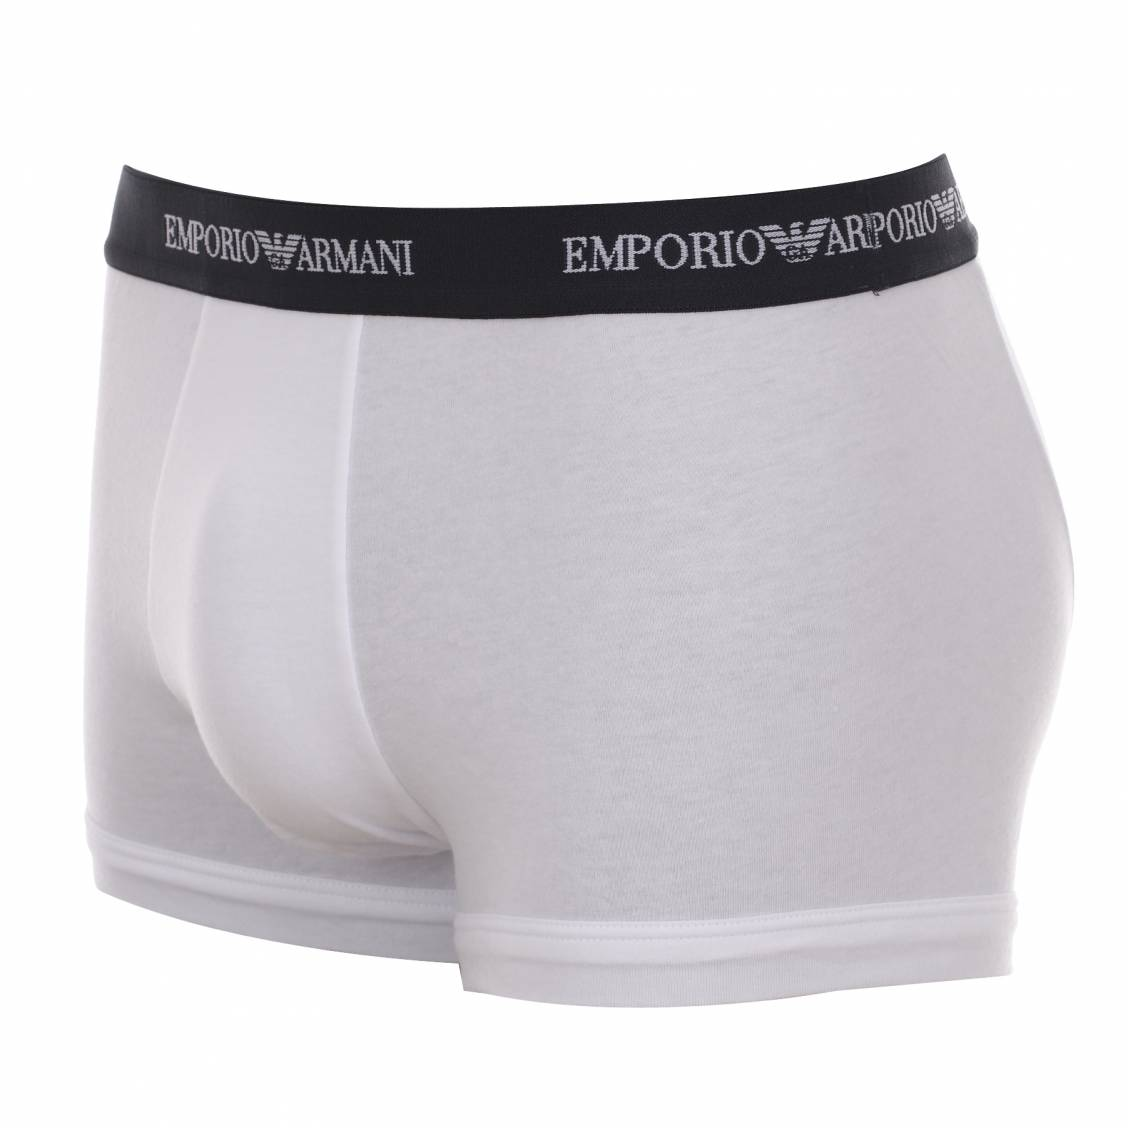 lot de shorty Emporio armani blanc